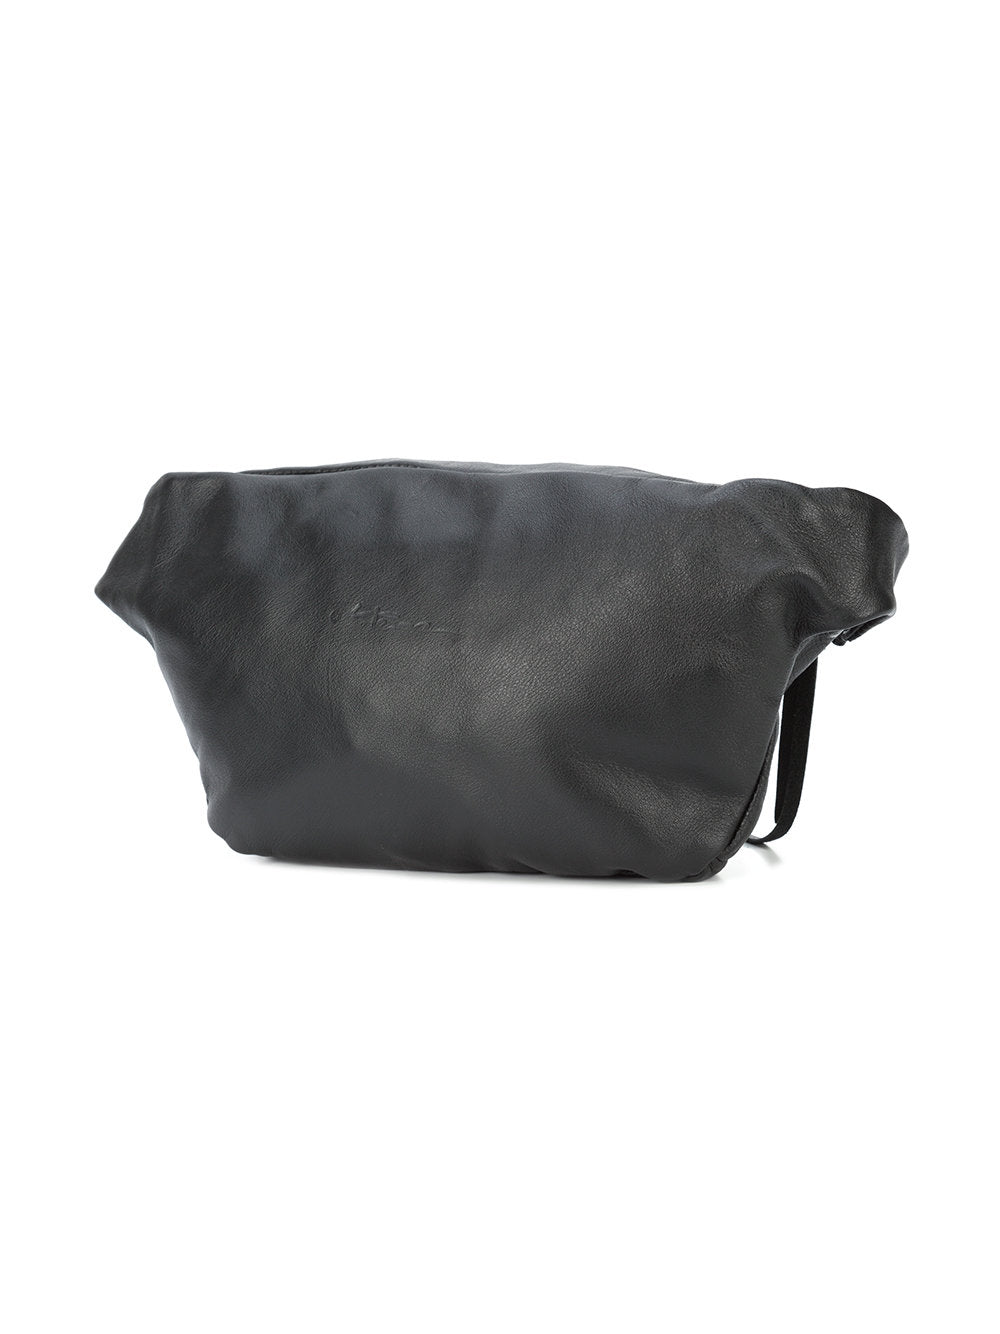 Barbara Bologna Black Leather Marsupio Fanny Pack - 3